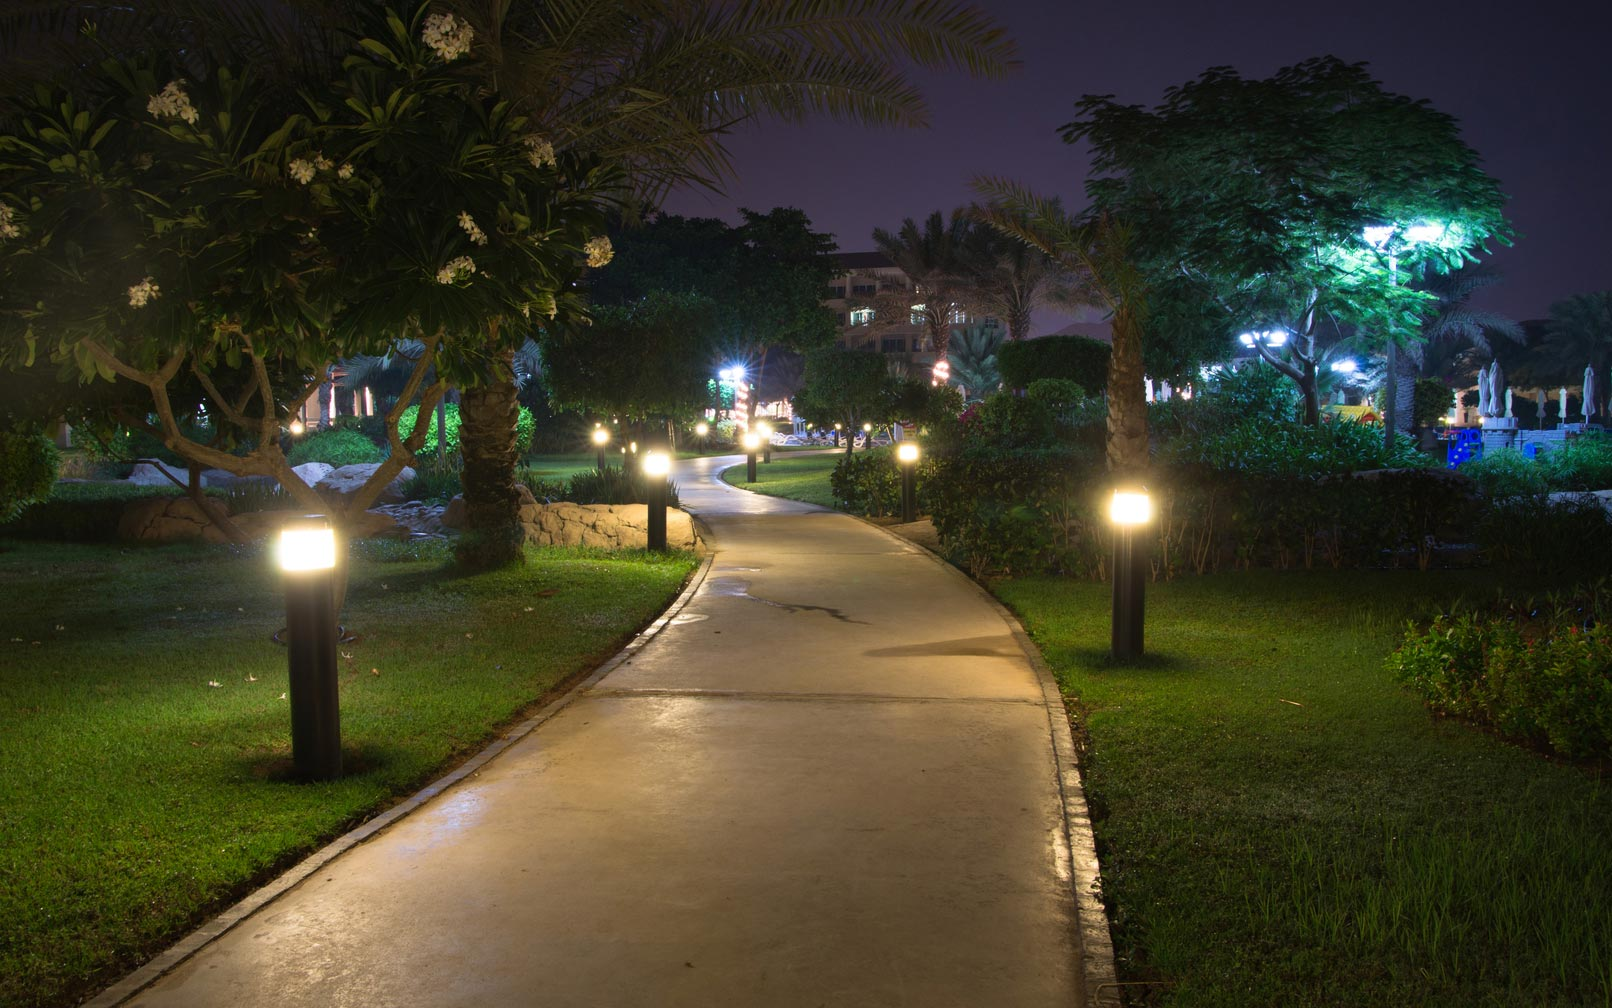 7 Ways You Can Save Money On Commercial Landscape LightingTerraCast Products